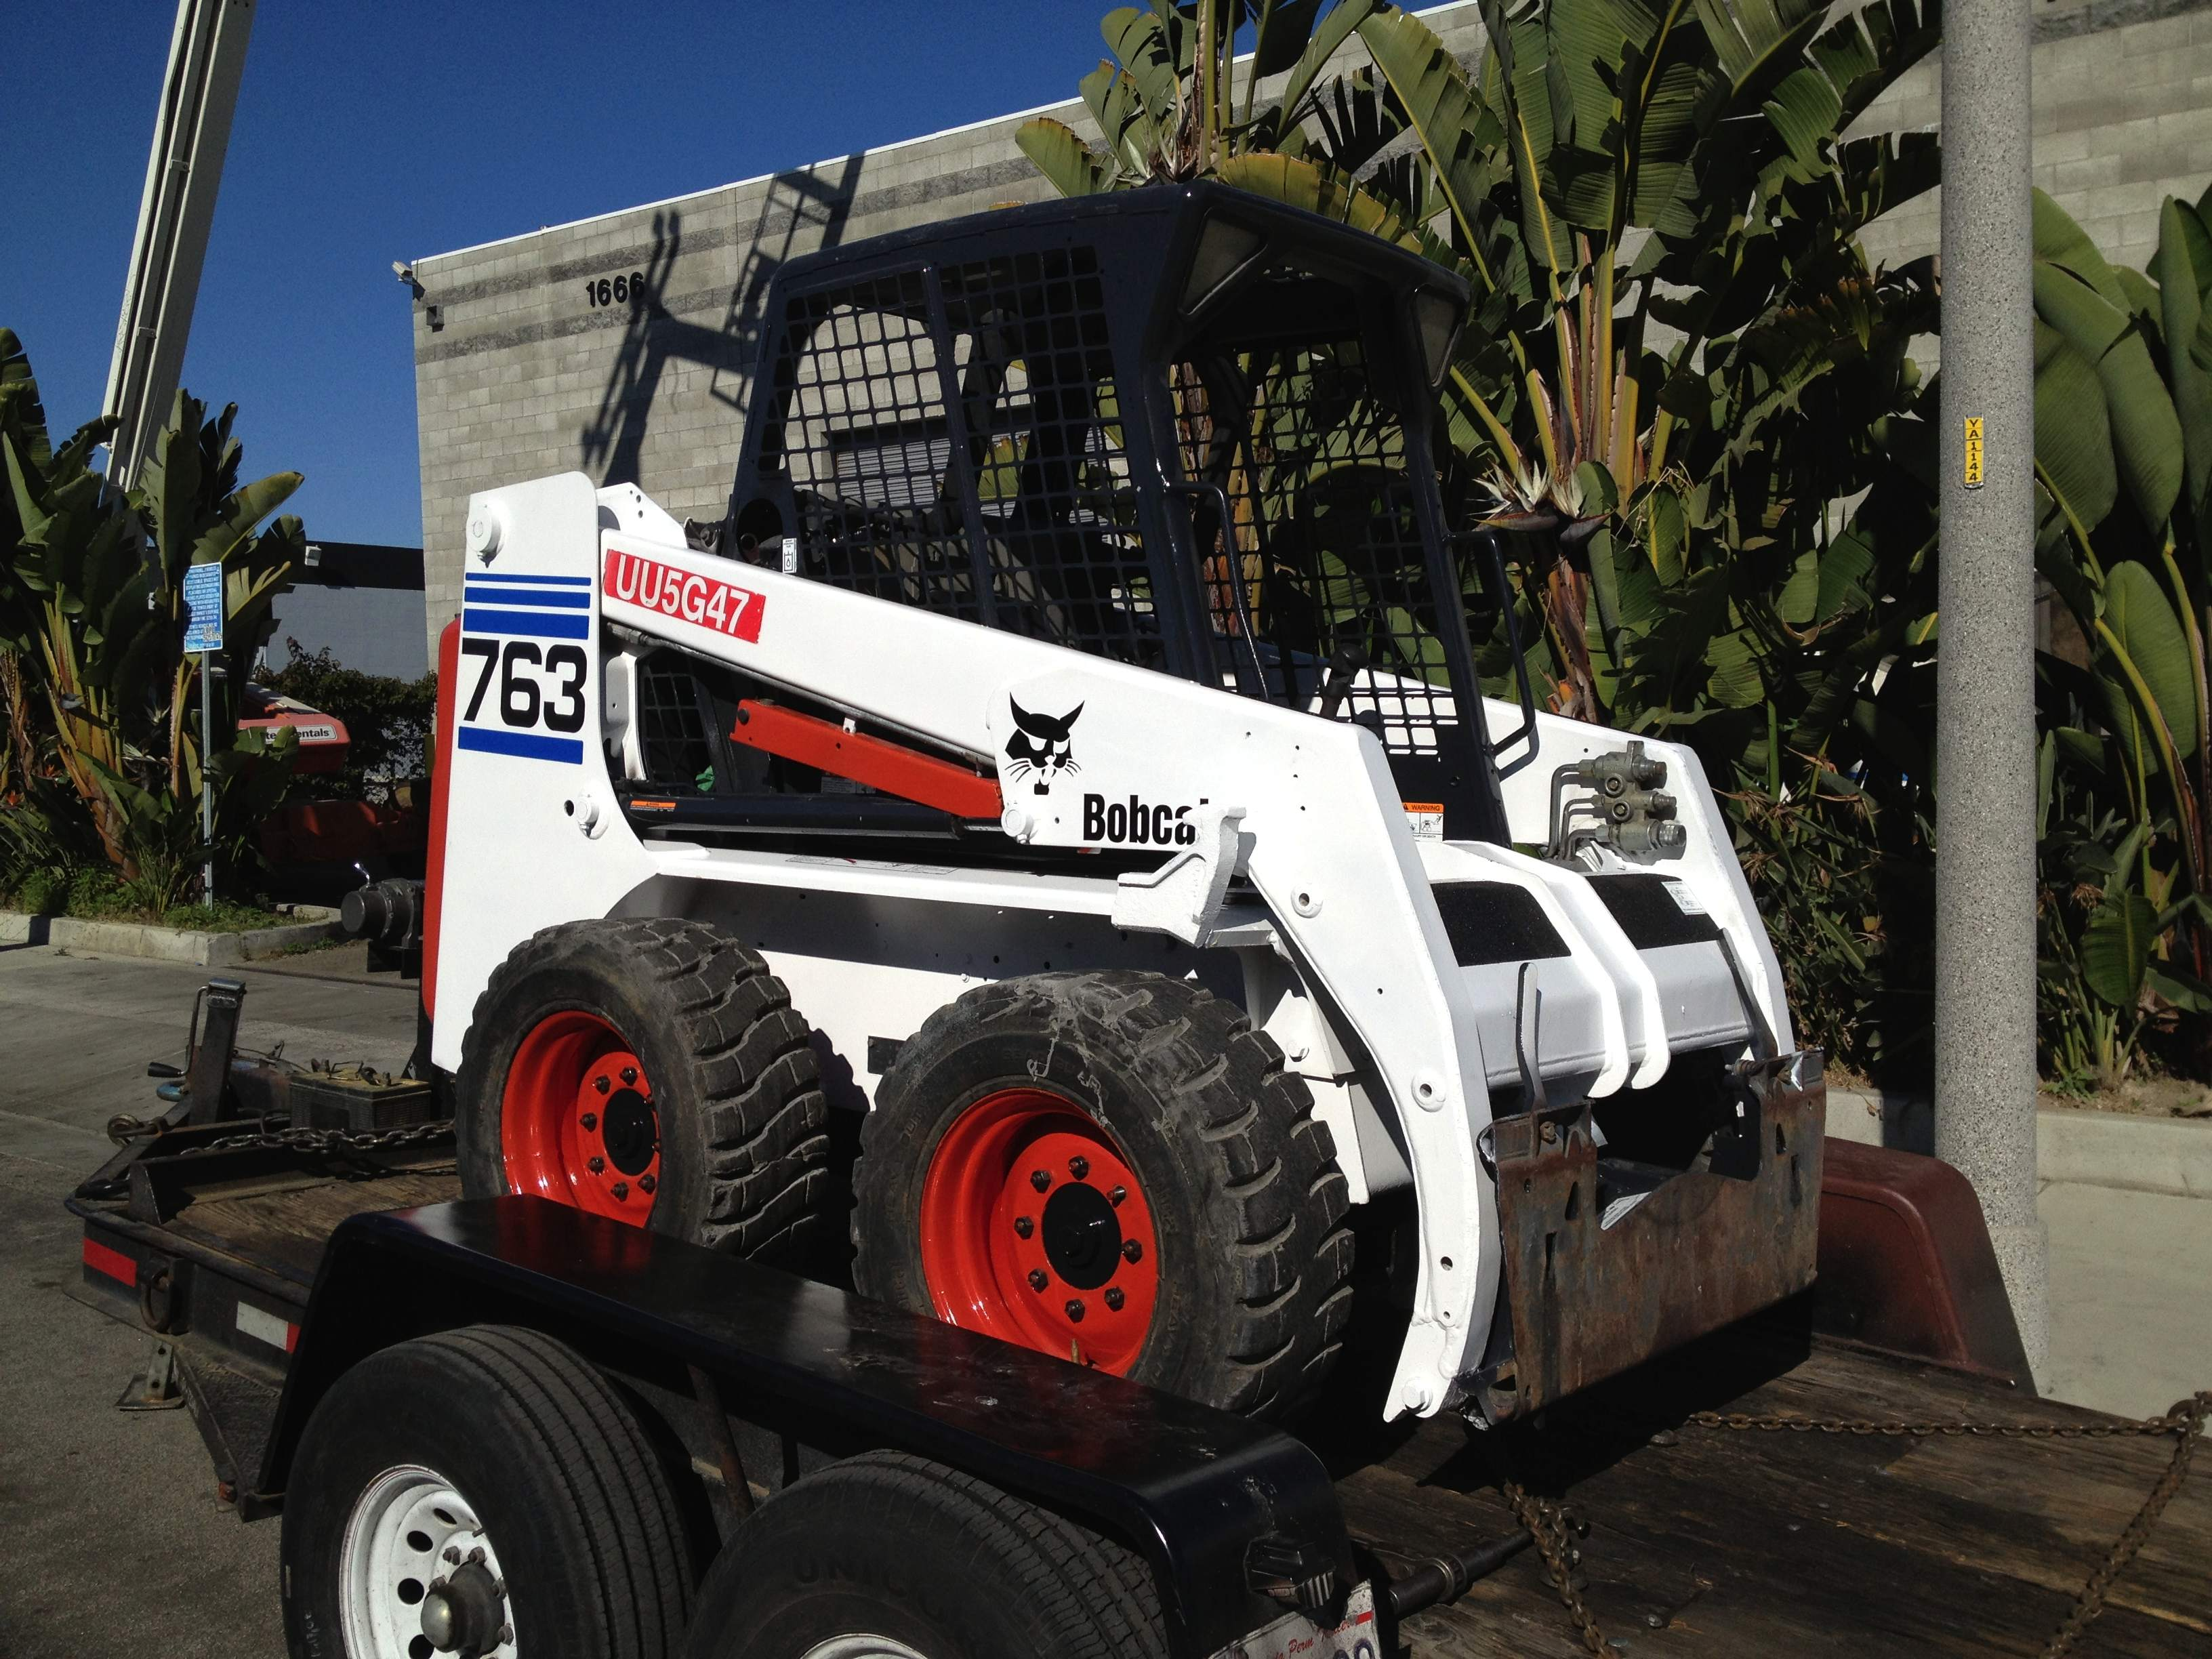 Used 2002 Bobcat 763 Skid Steer Loader - Kennelly Equipment